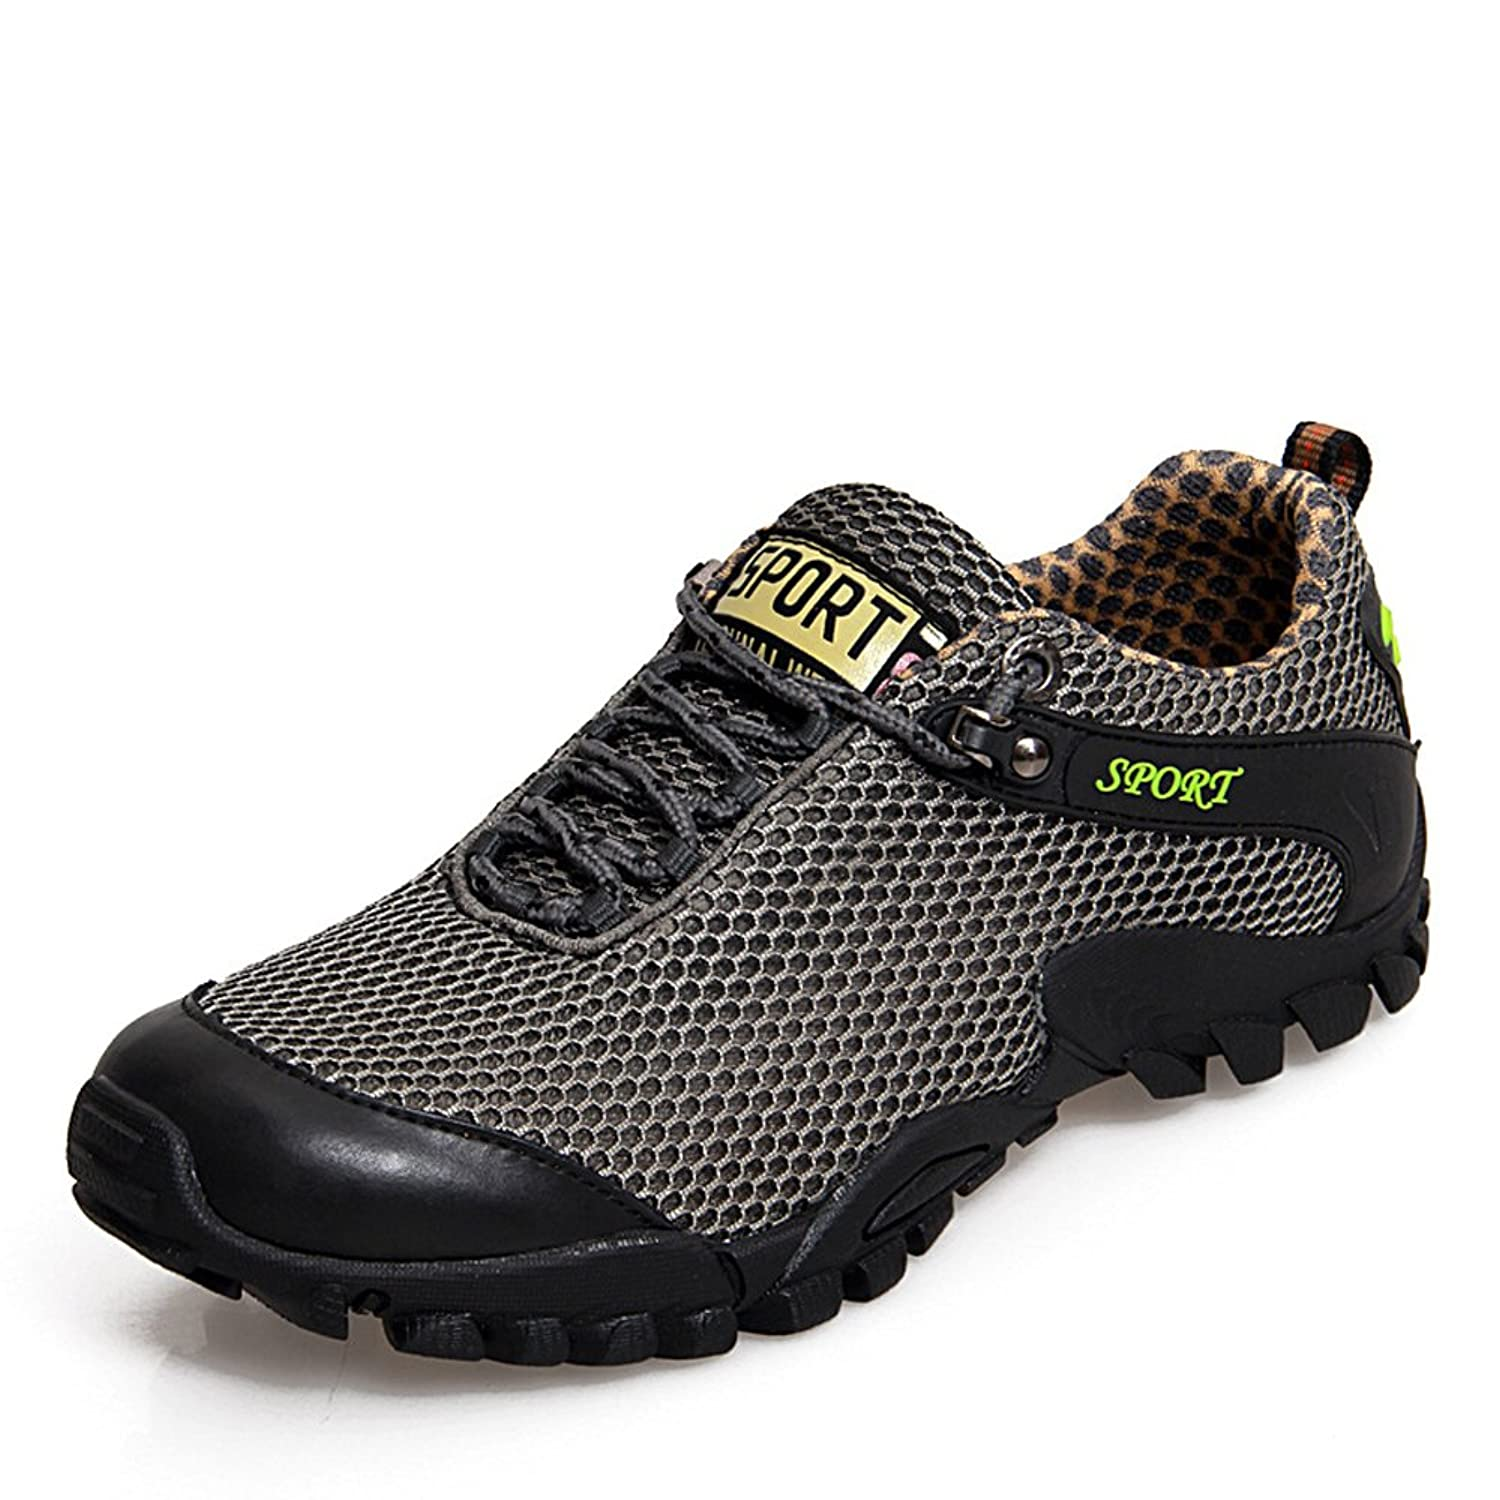 A Point Men's Cross Country Running Shoes